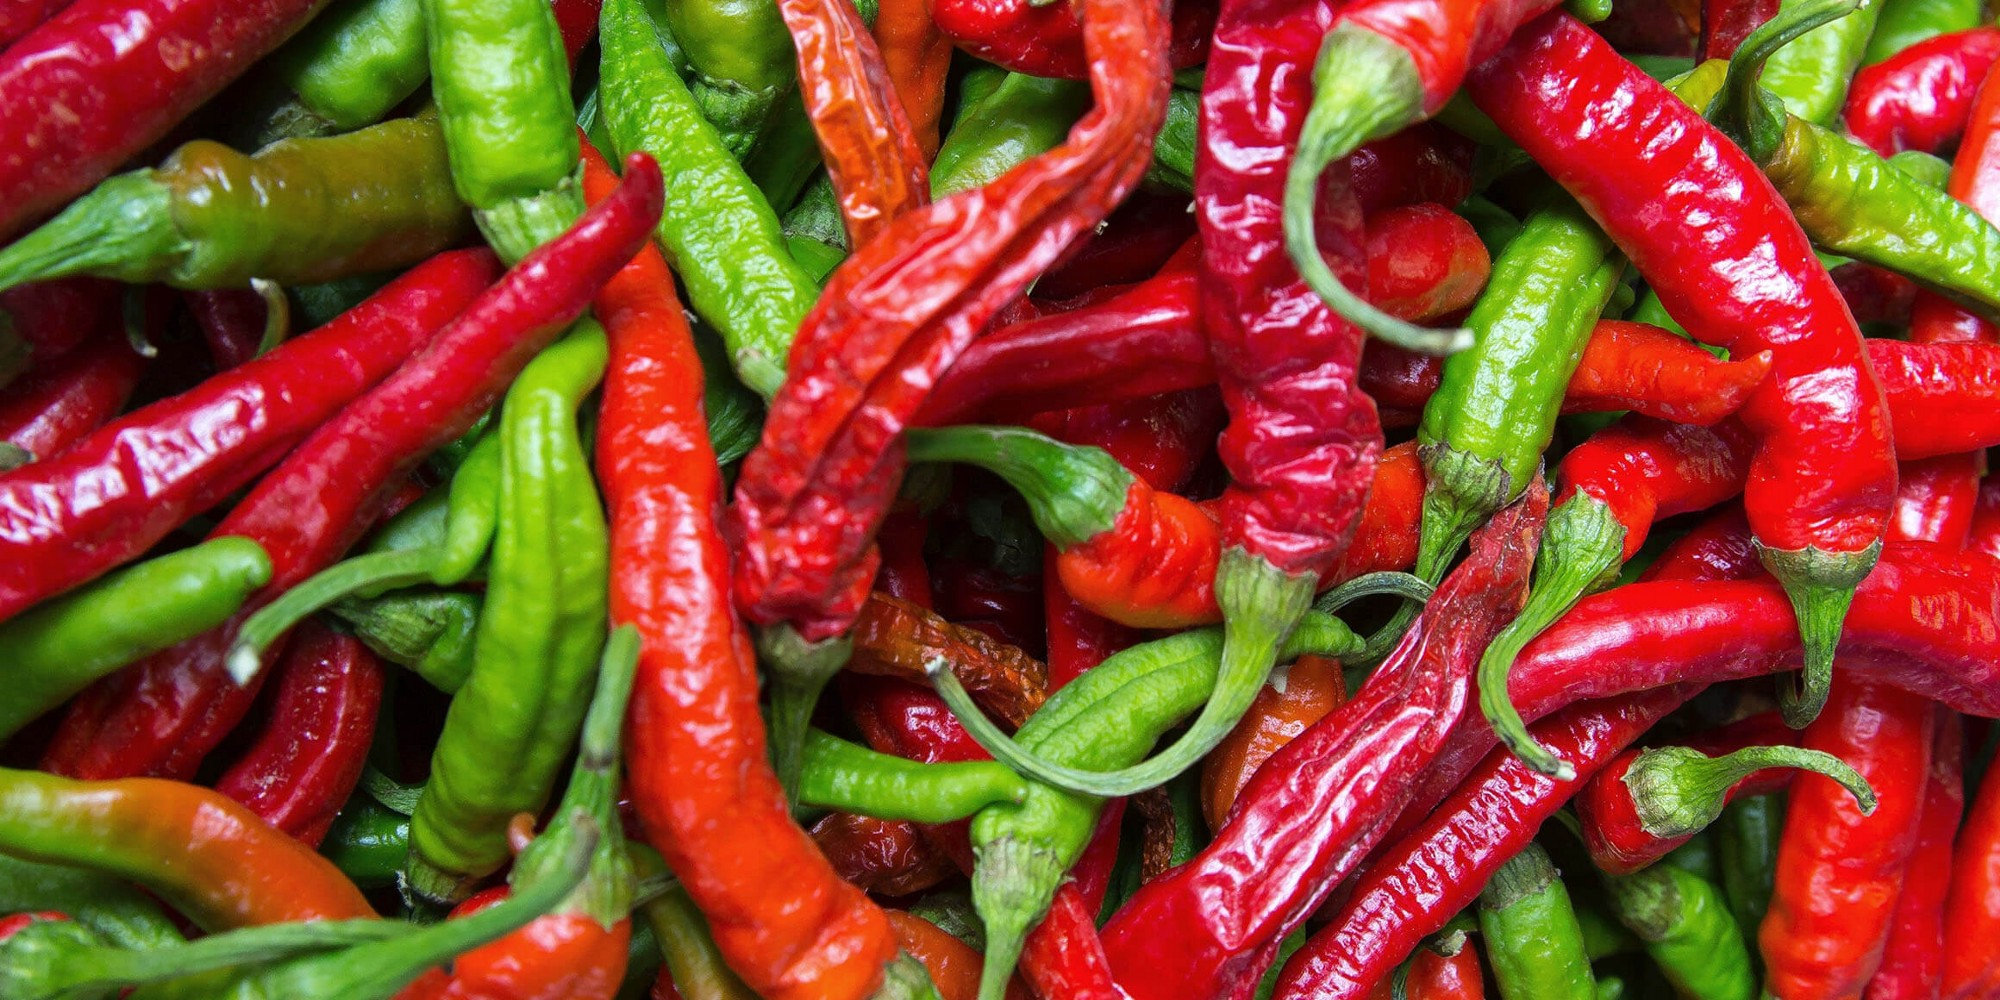 A photograph showing a mixture of red and green chili peppers